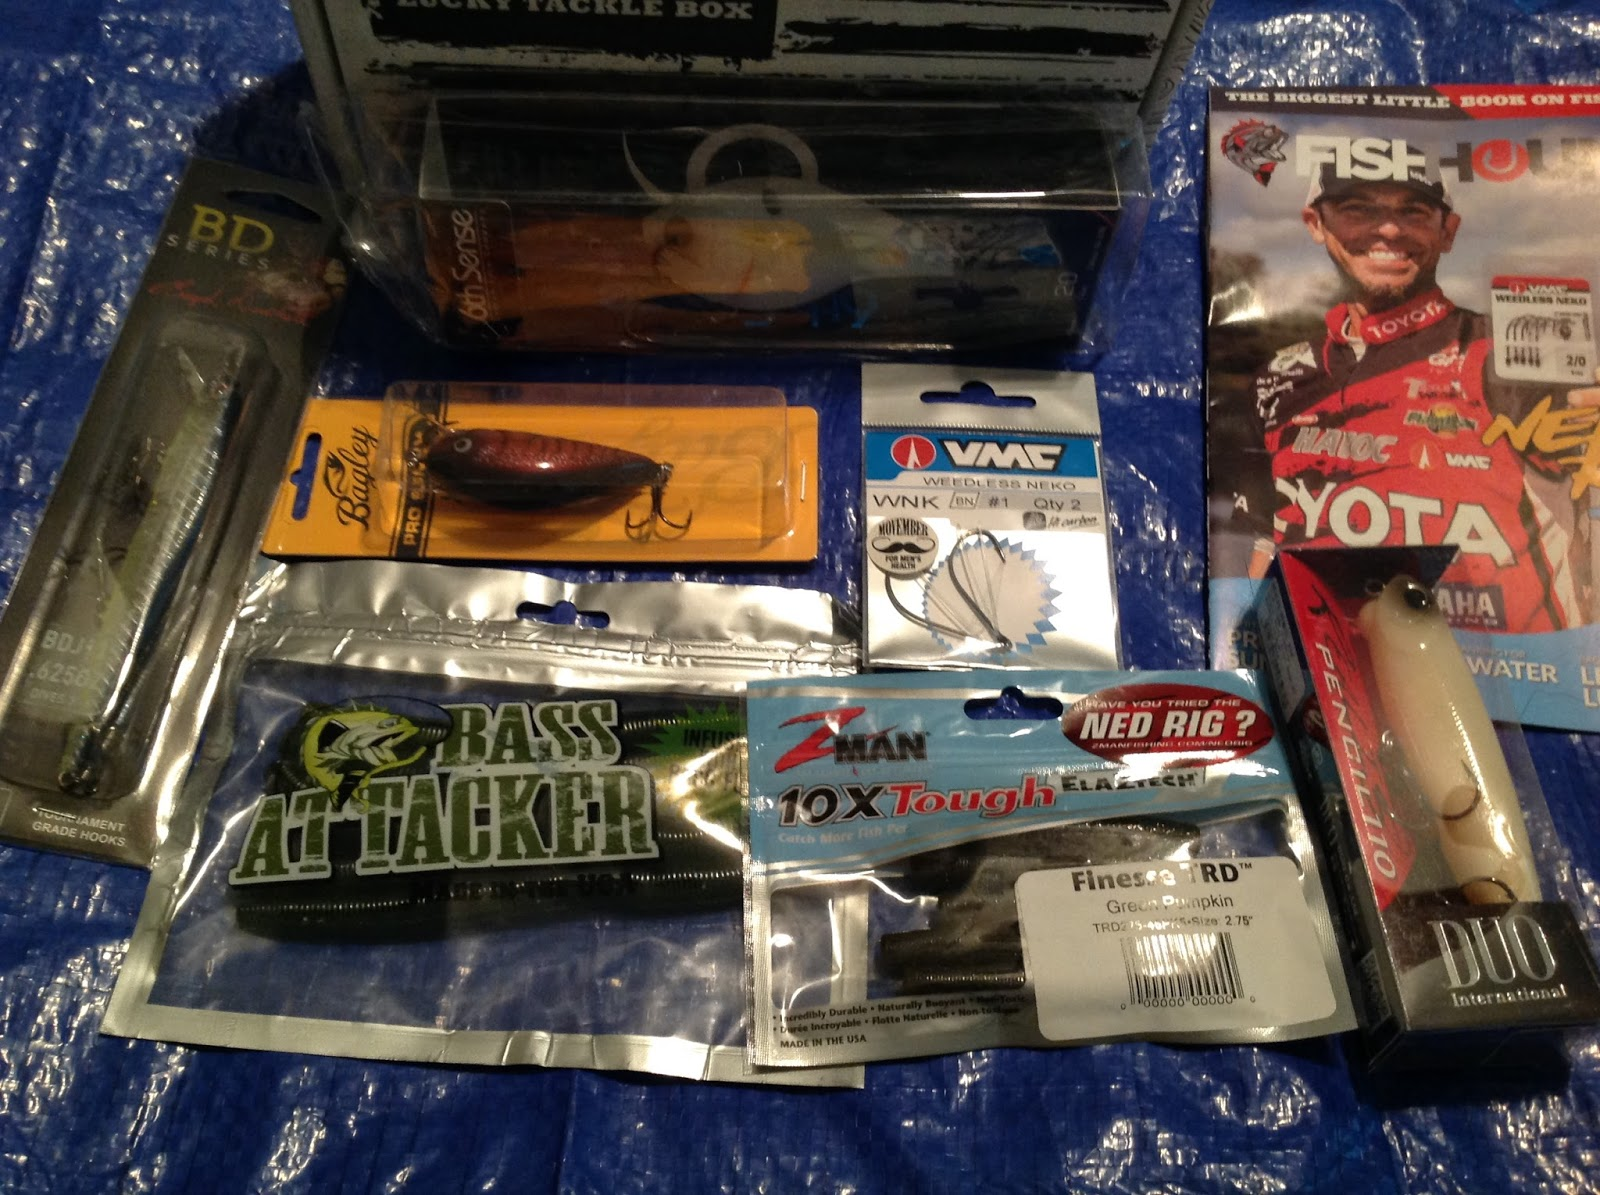 Cassandra m 39 s place lucky tackle box review luckytacklebox for Monthly fishing subscription boxes